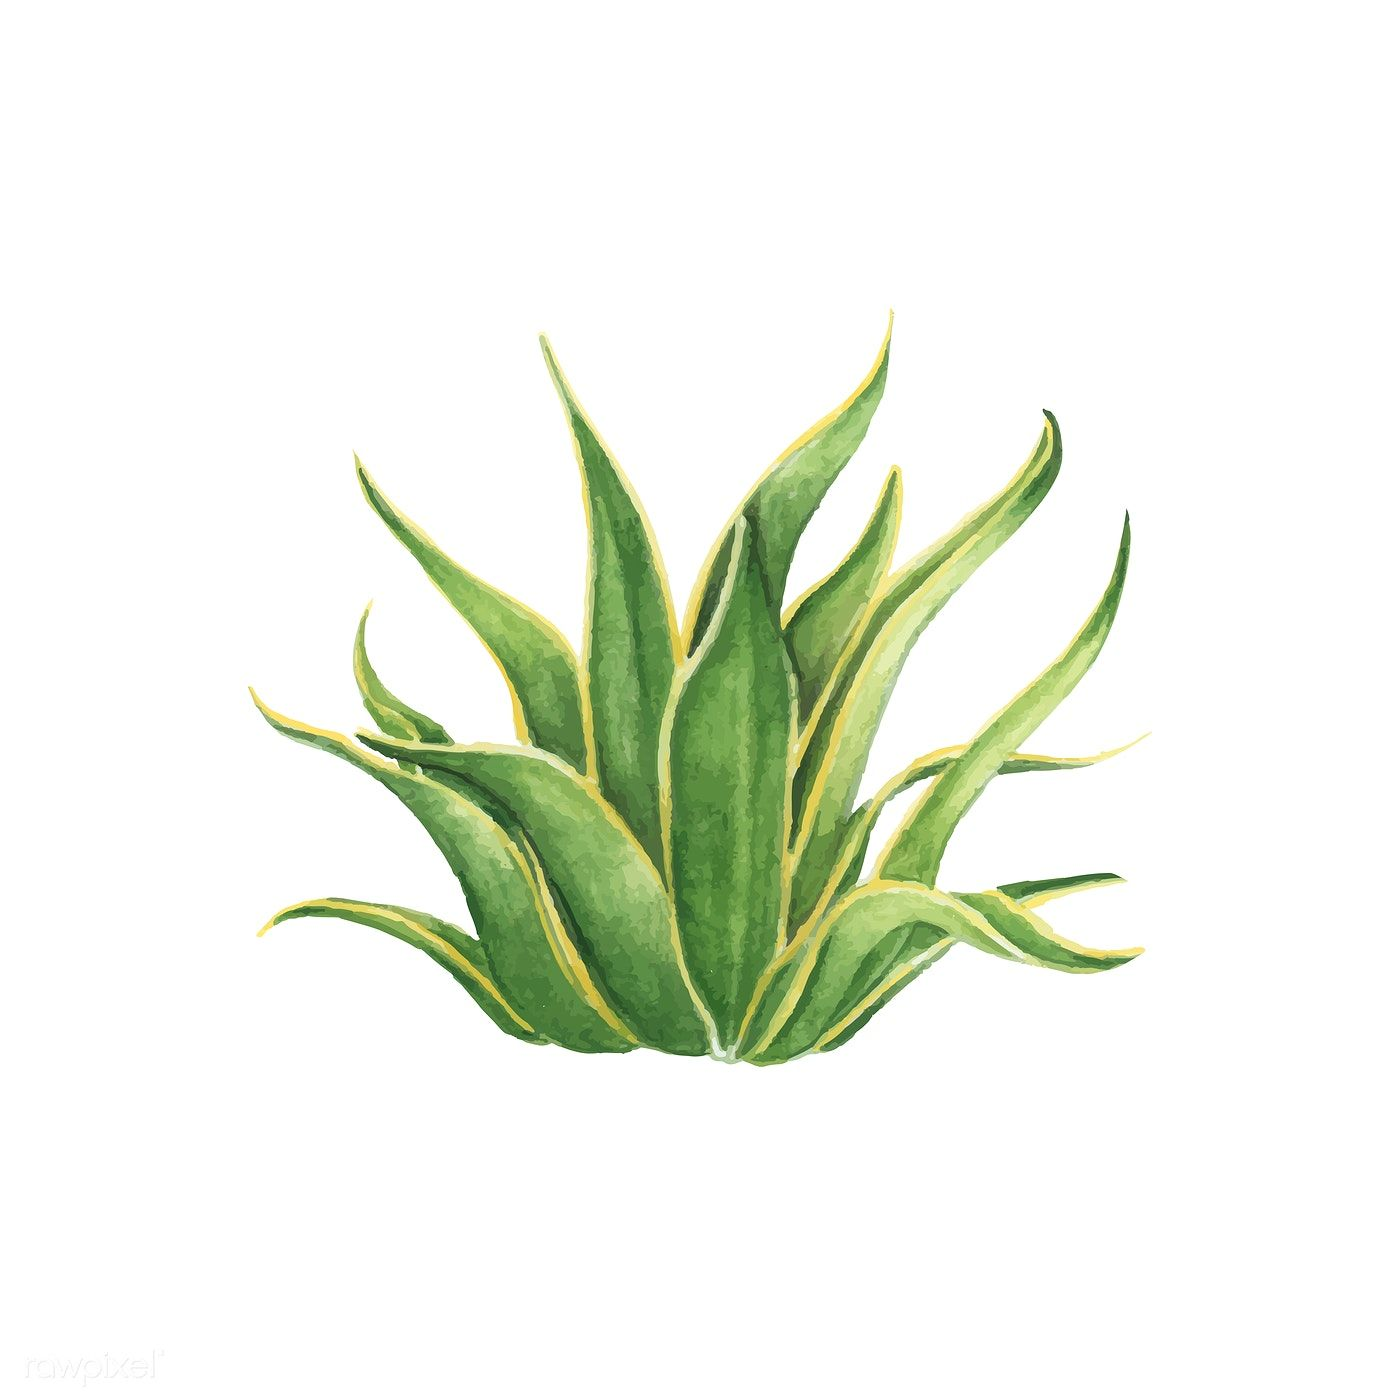 Cactus Porn Dibujo download premium vector of hand drawn american aloe century